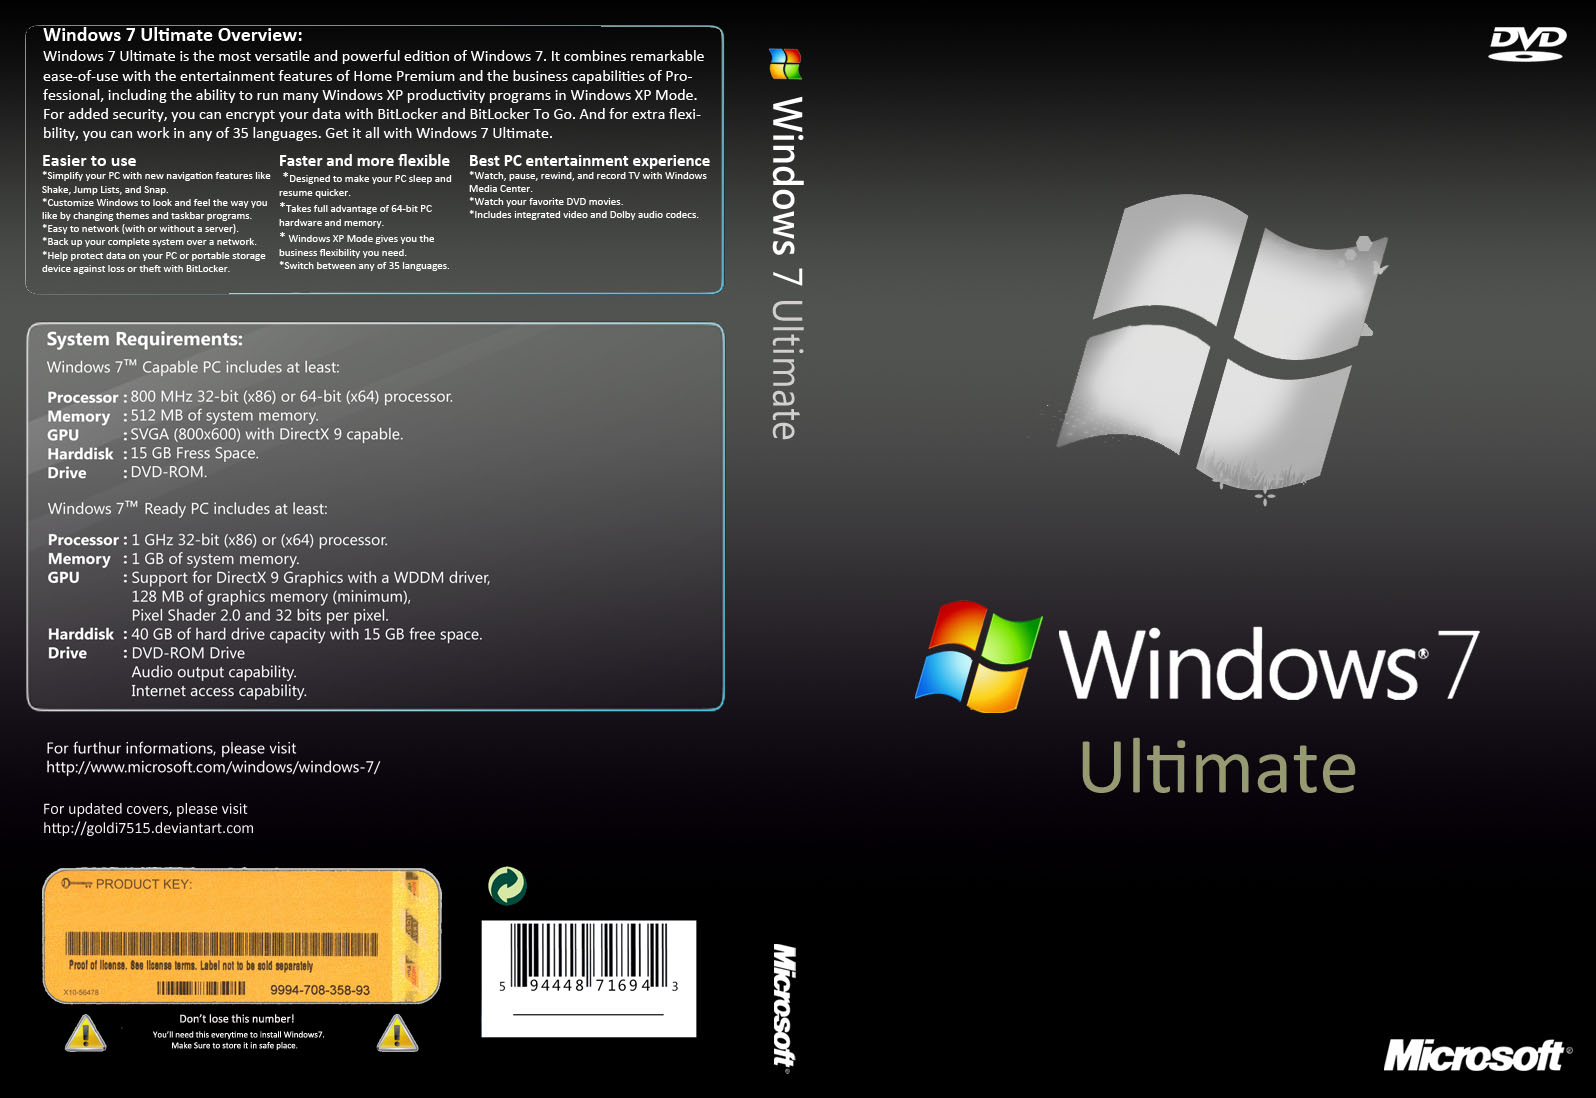 descargar activador de windows 7 ultimate gratis espanol